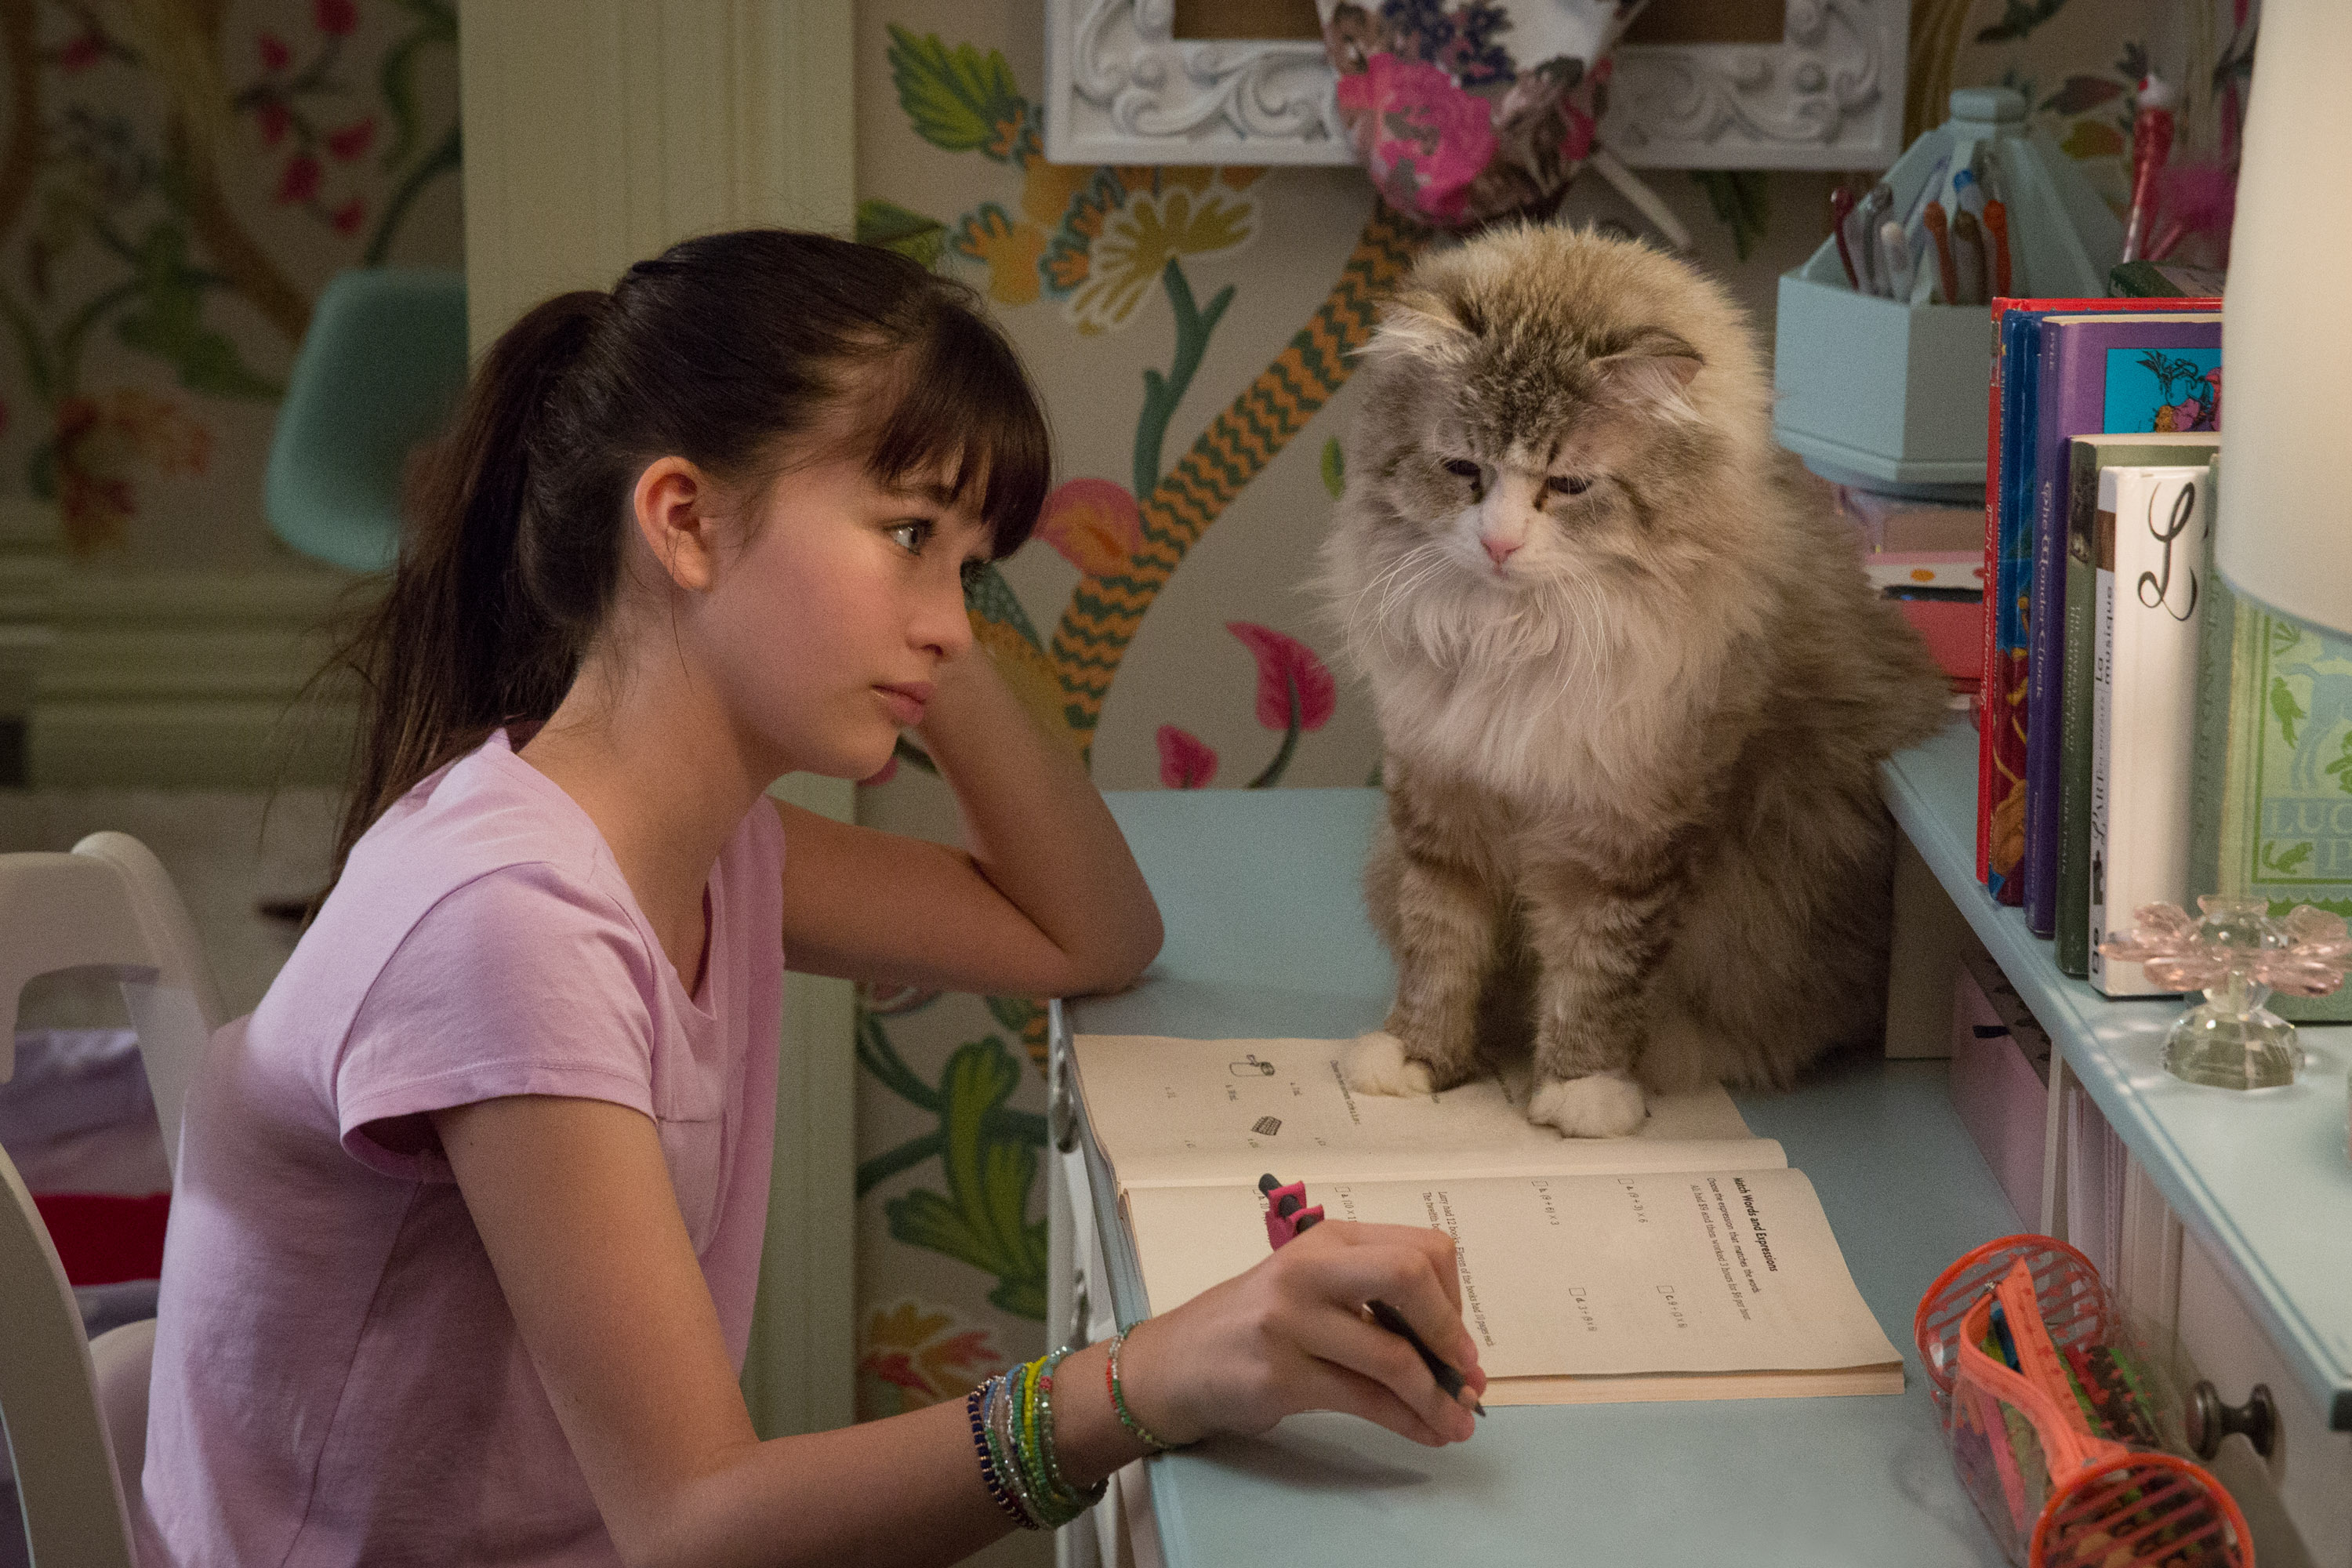 Melina Weissman and Mr. Fuzzy Pants star in Nine Lives. Photo courtesy: EuropaCorp